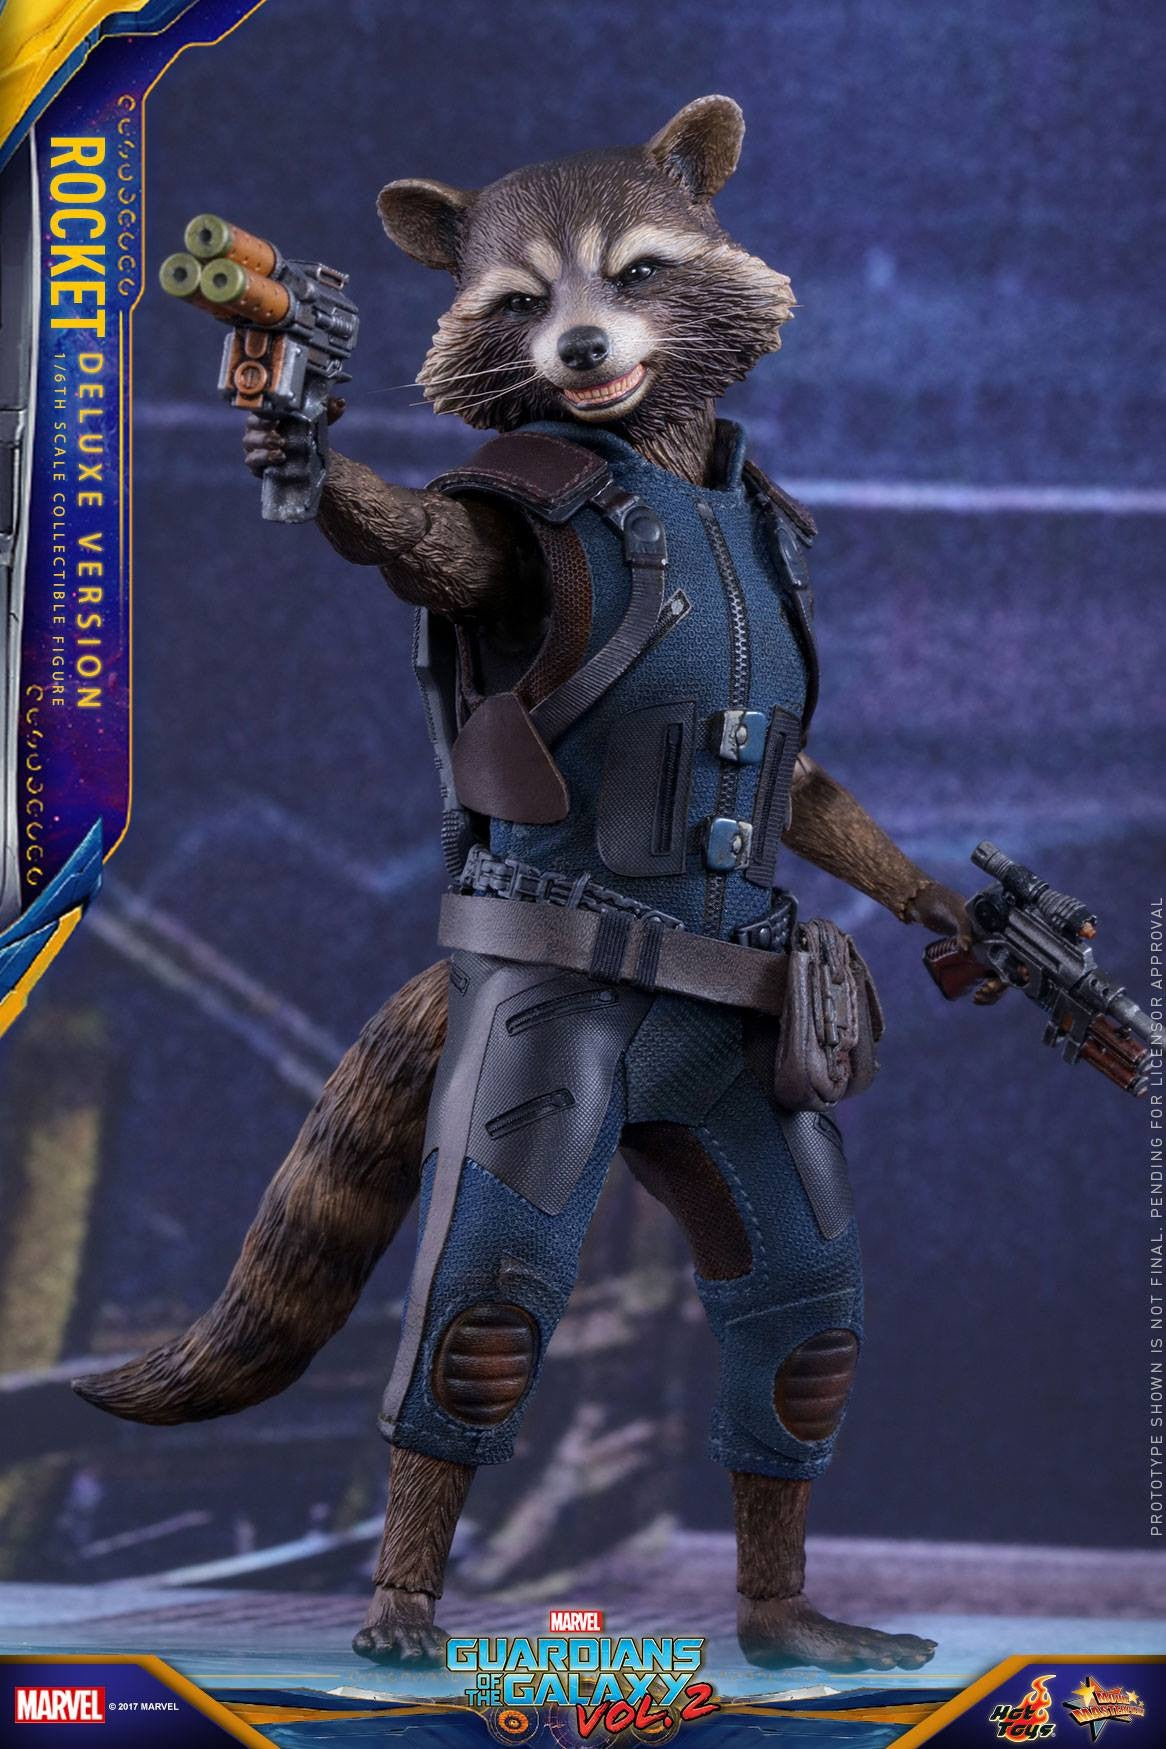 Hot Toys - MMS411 - Guardians of the Galaxy Vol. 2 - Rocket Raccoon (Deluxe Edition)